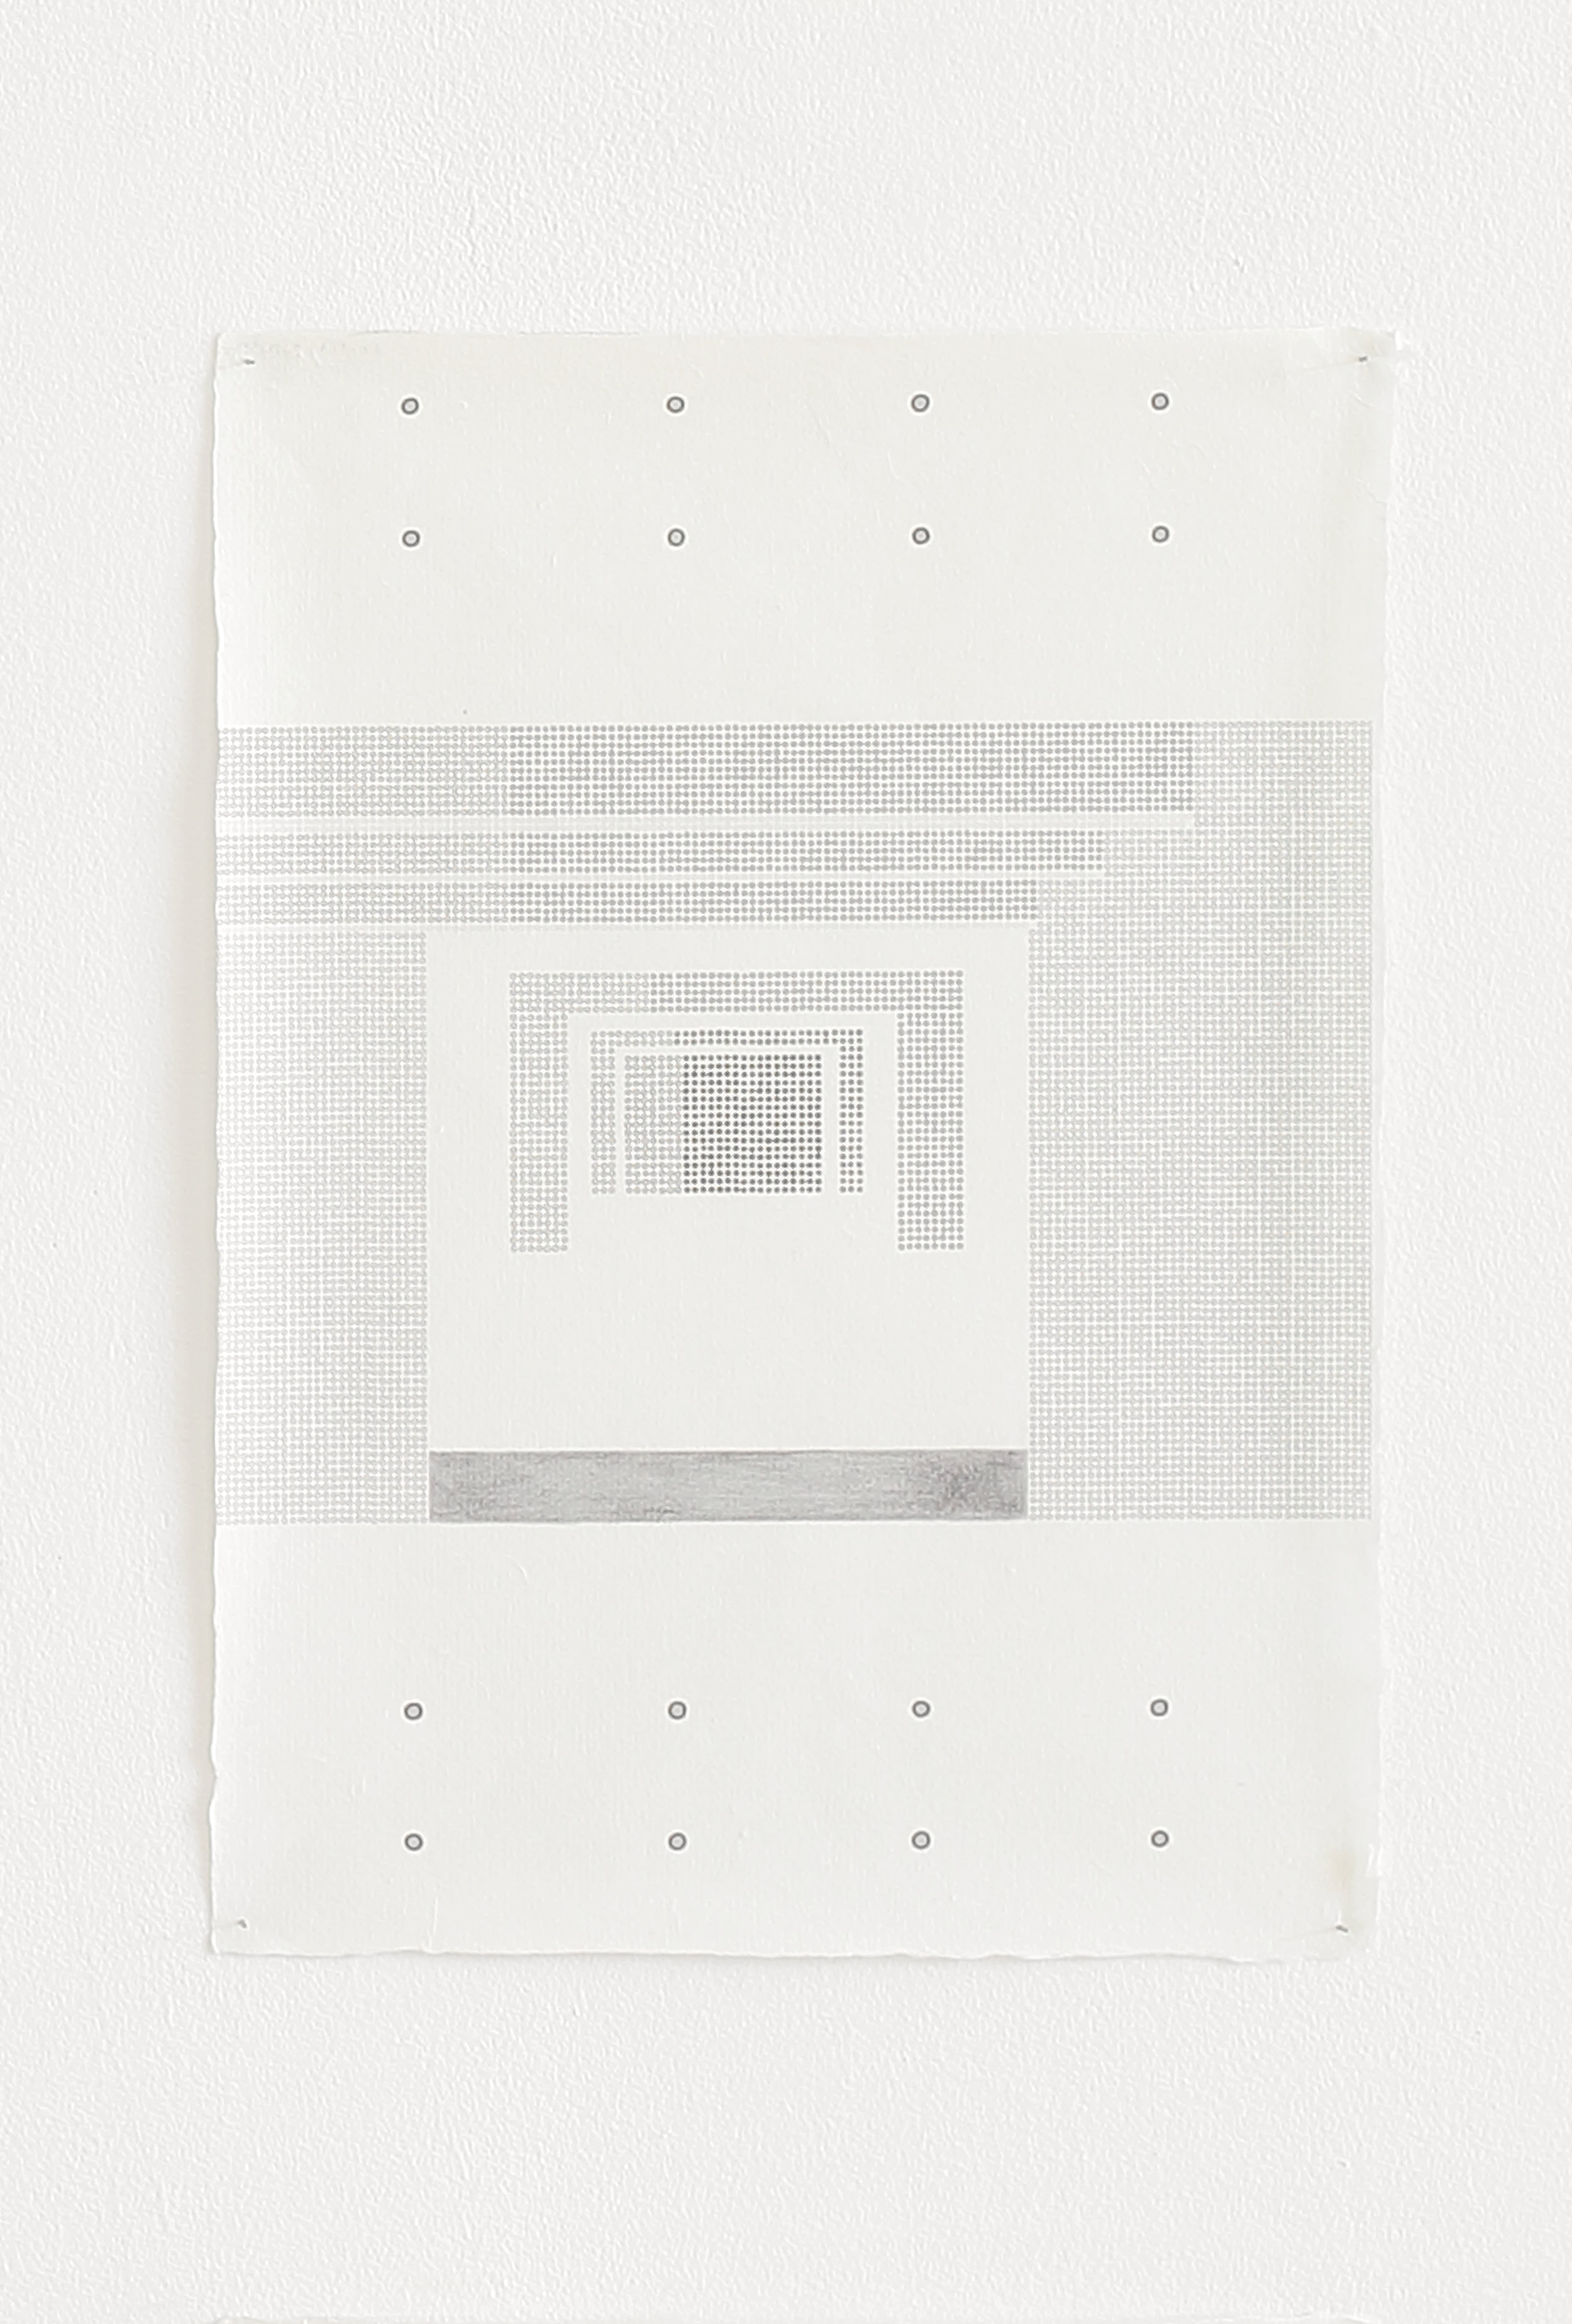 Azadeh Gholizadeh ,  Repetition Figure (1707) , 2017 , graphite, print on rice paper